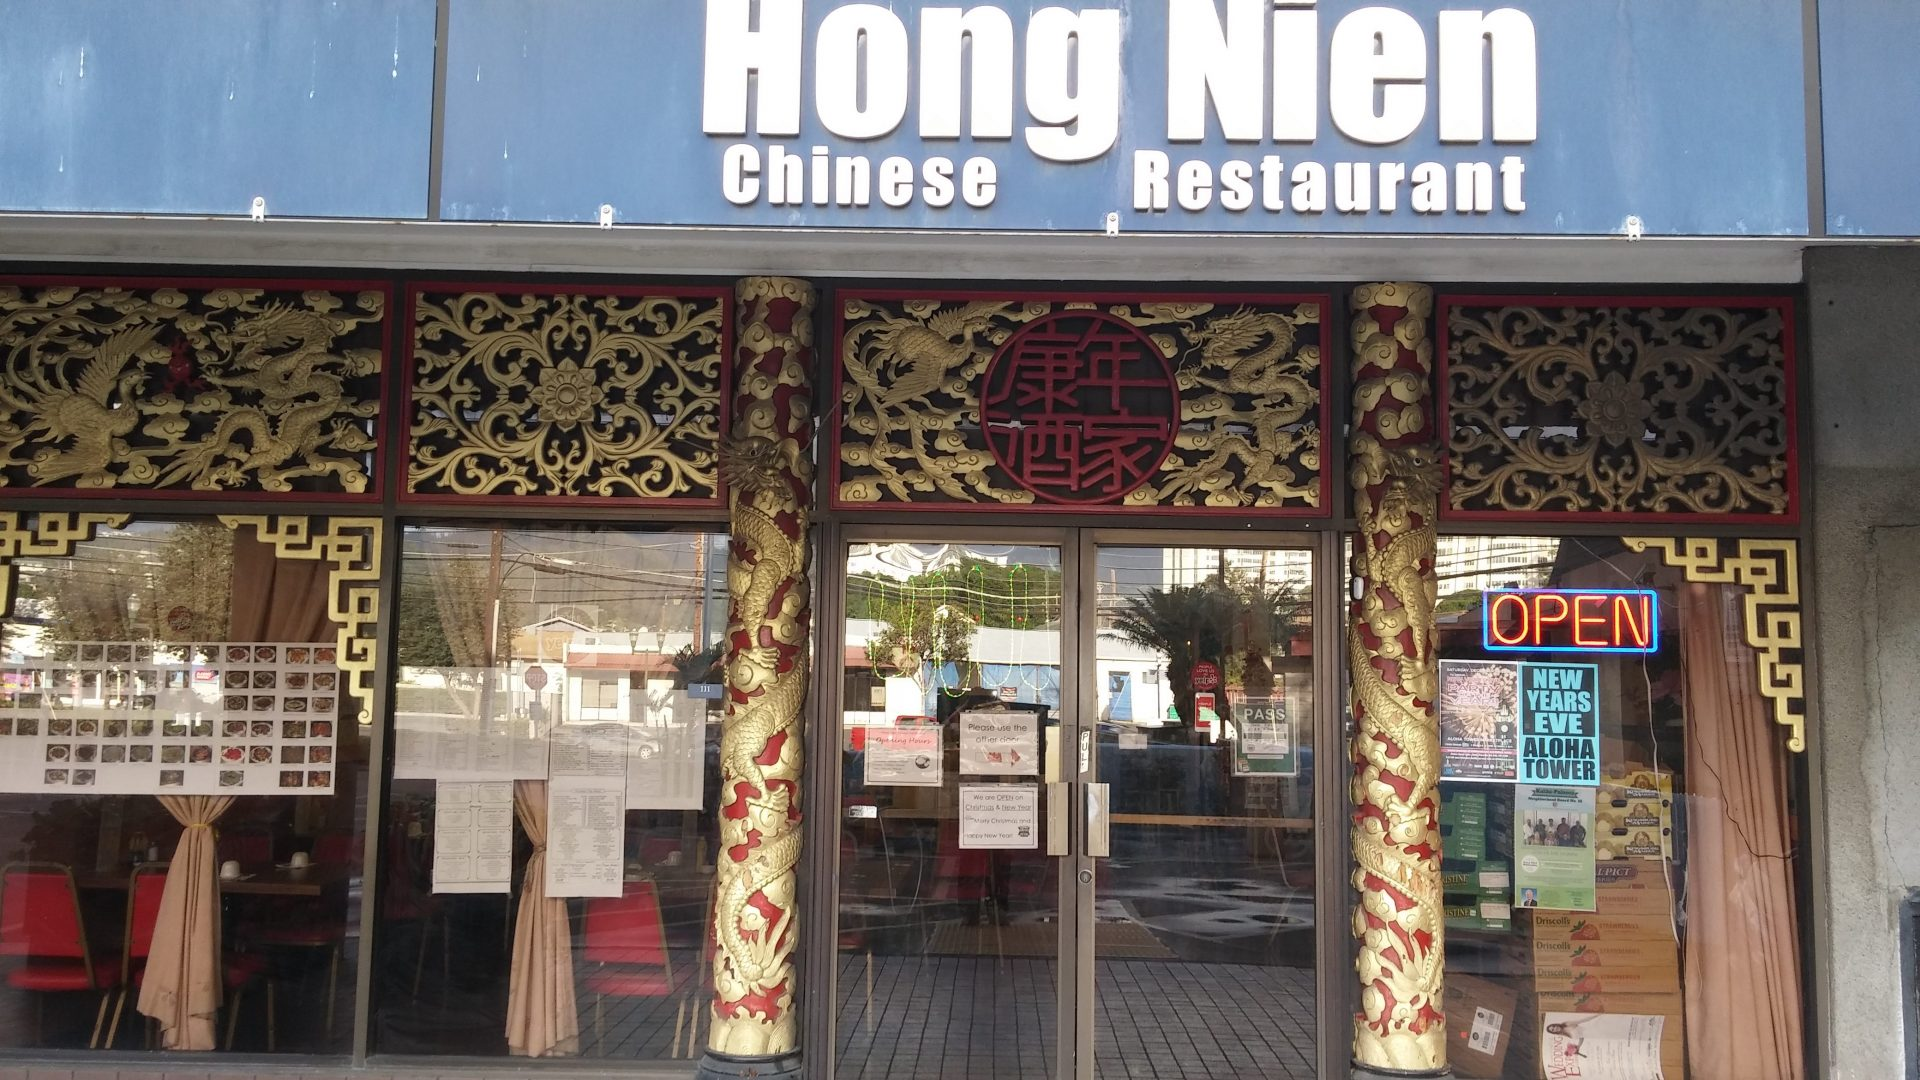 Hong Nien Chinese Restaurant